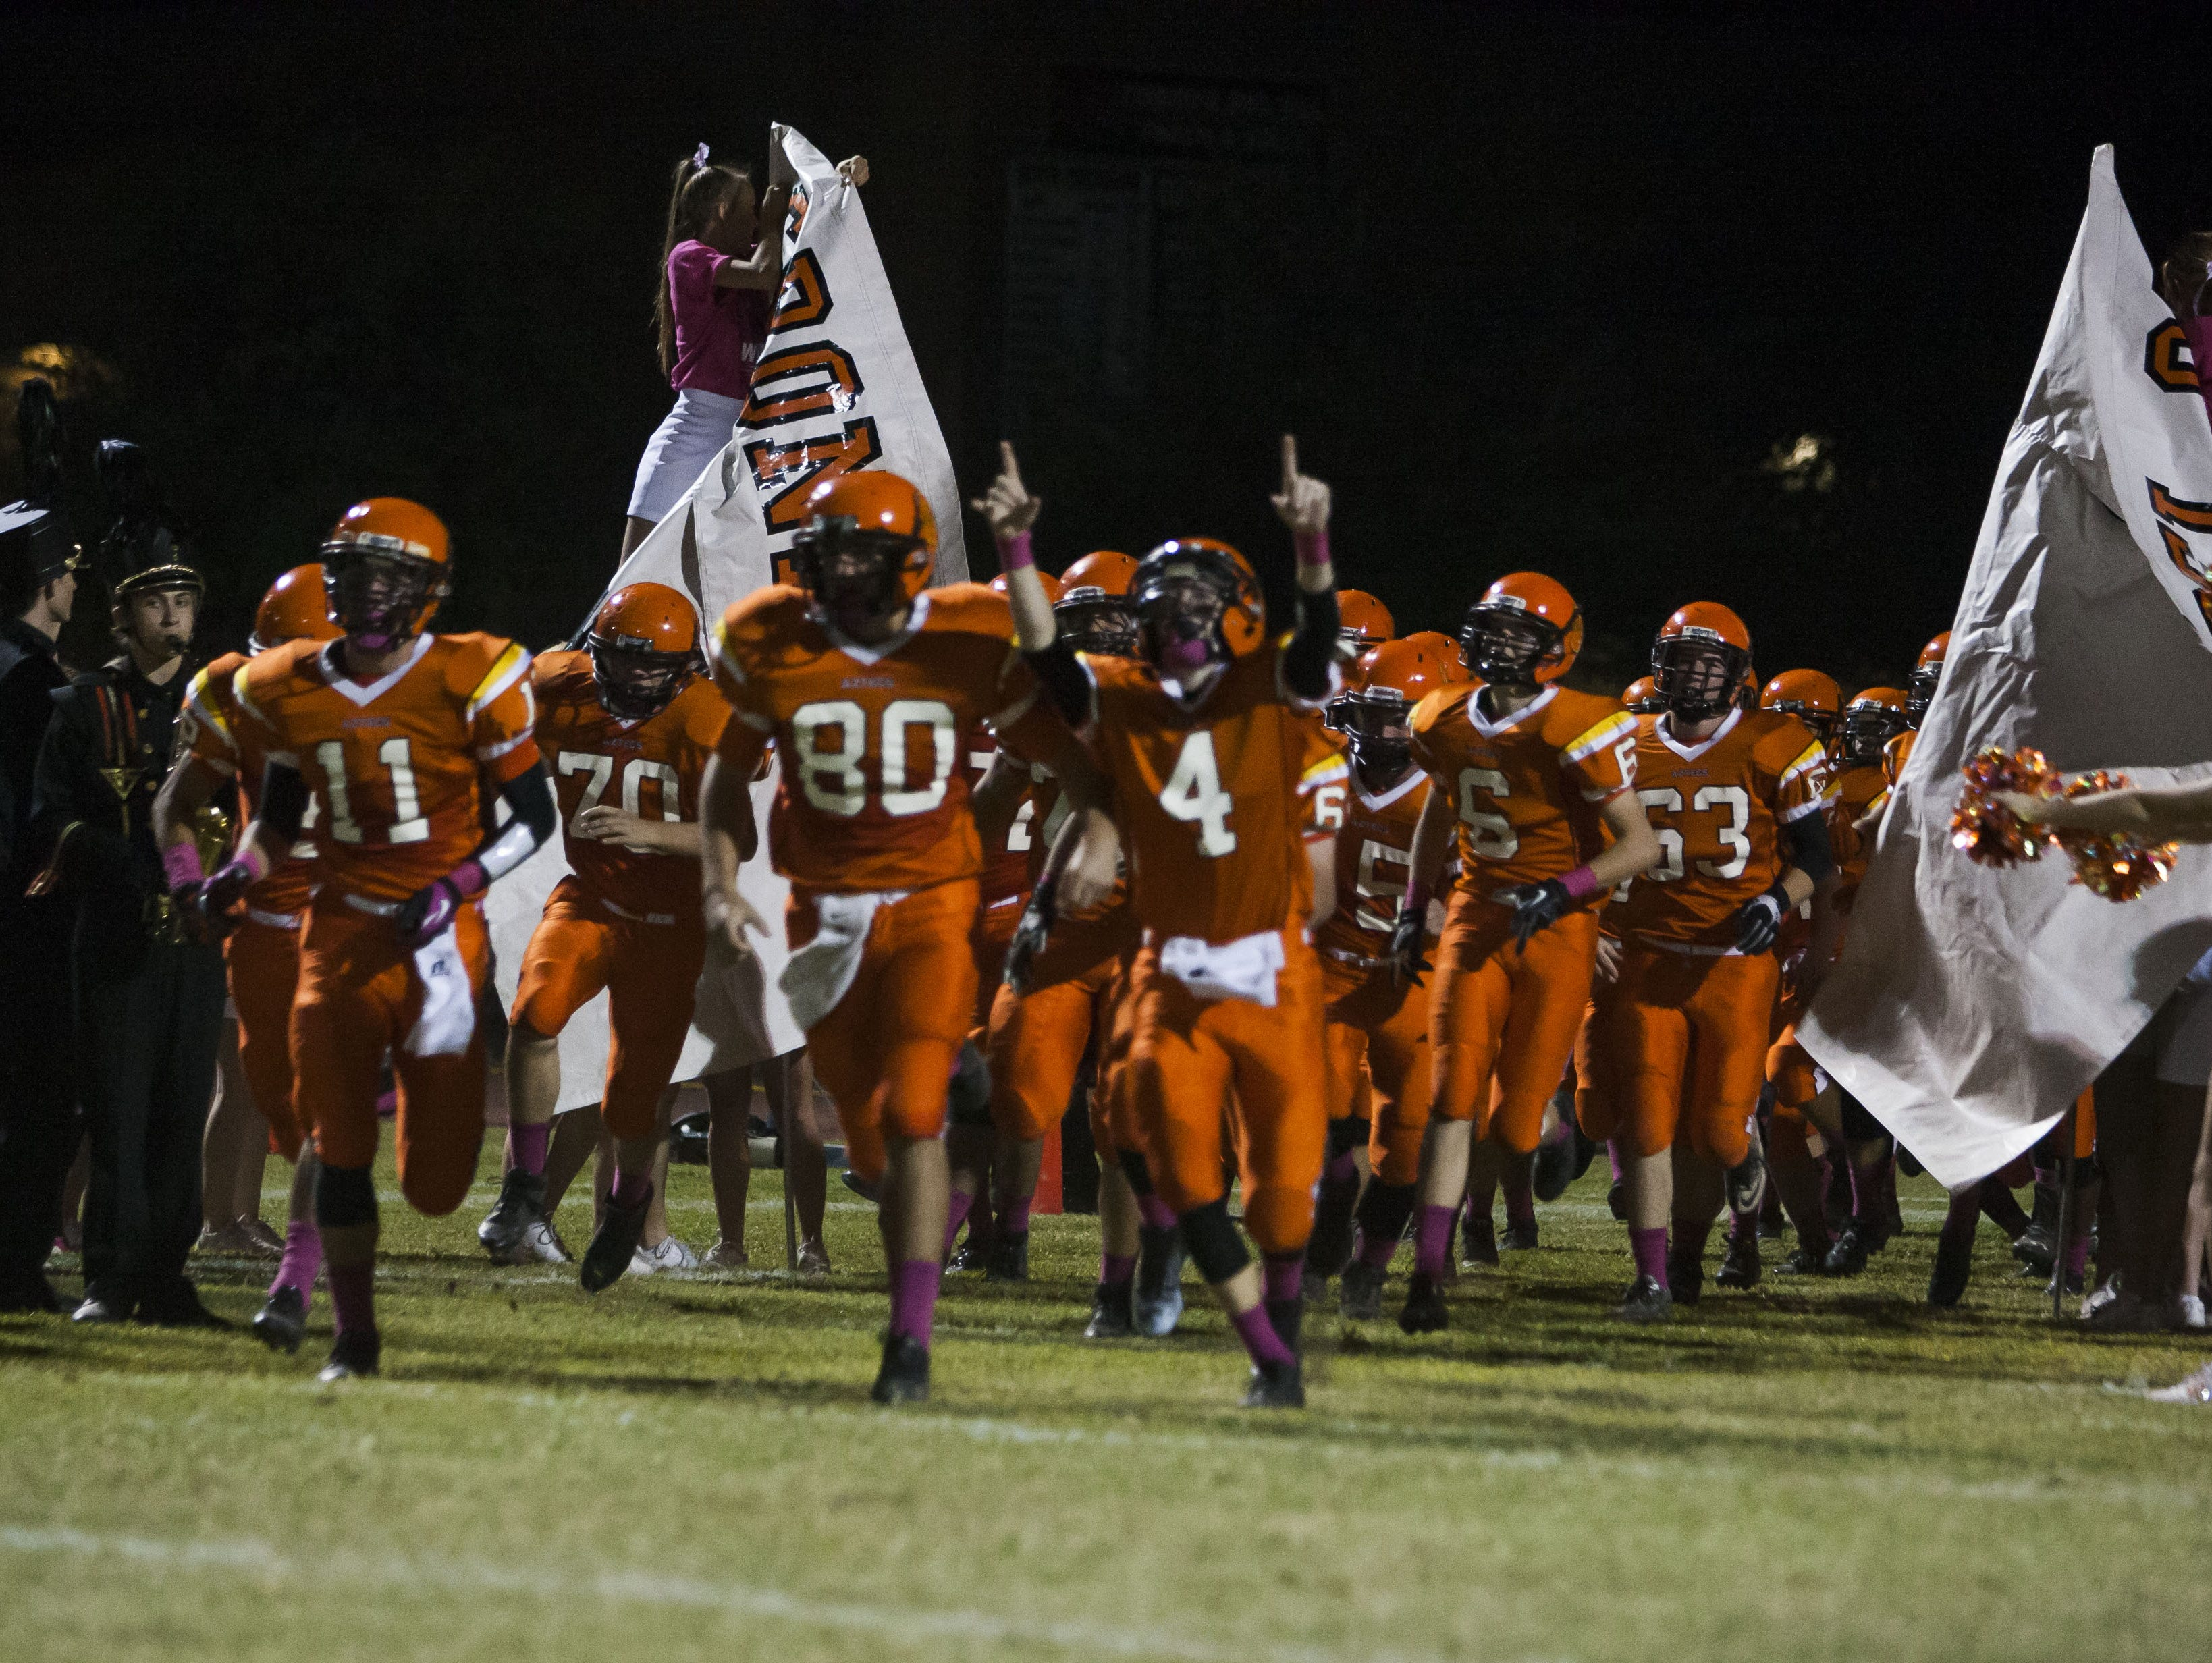 As we turn into Week 4 of the high school football season, there have been wonderful impressions turned in by some unsuspecting players and teams.